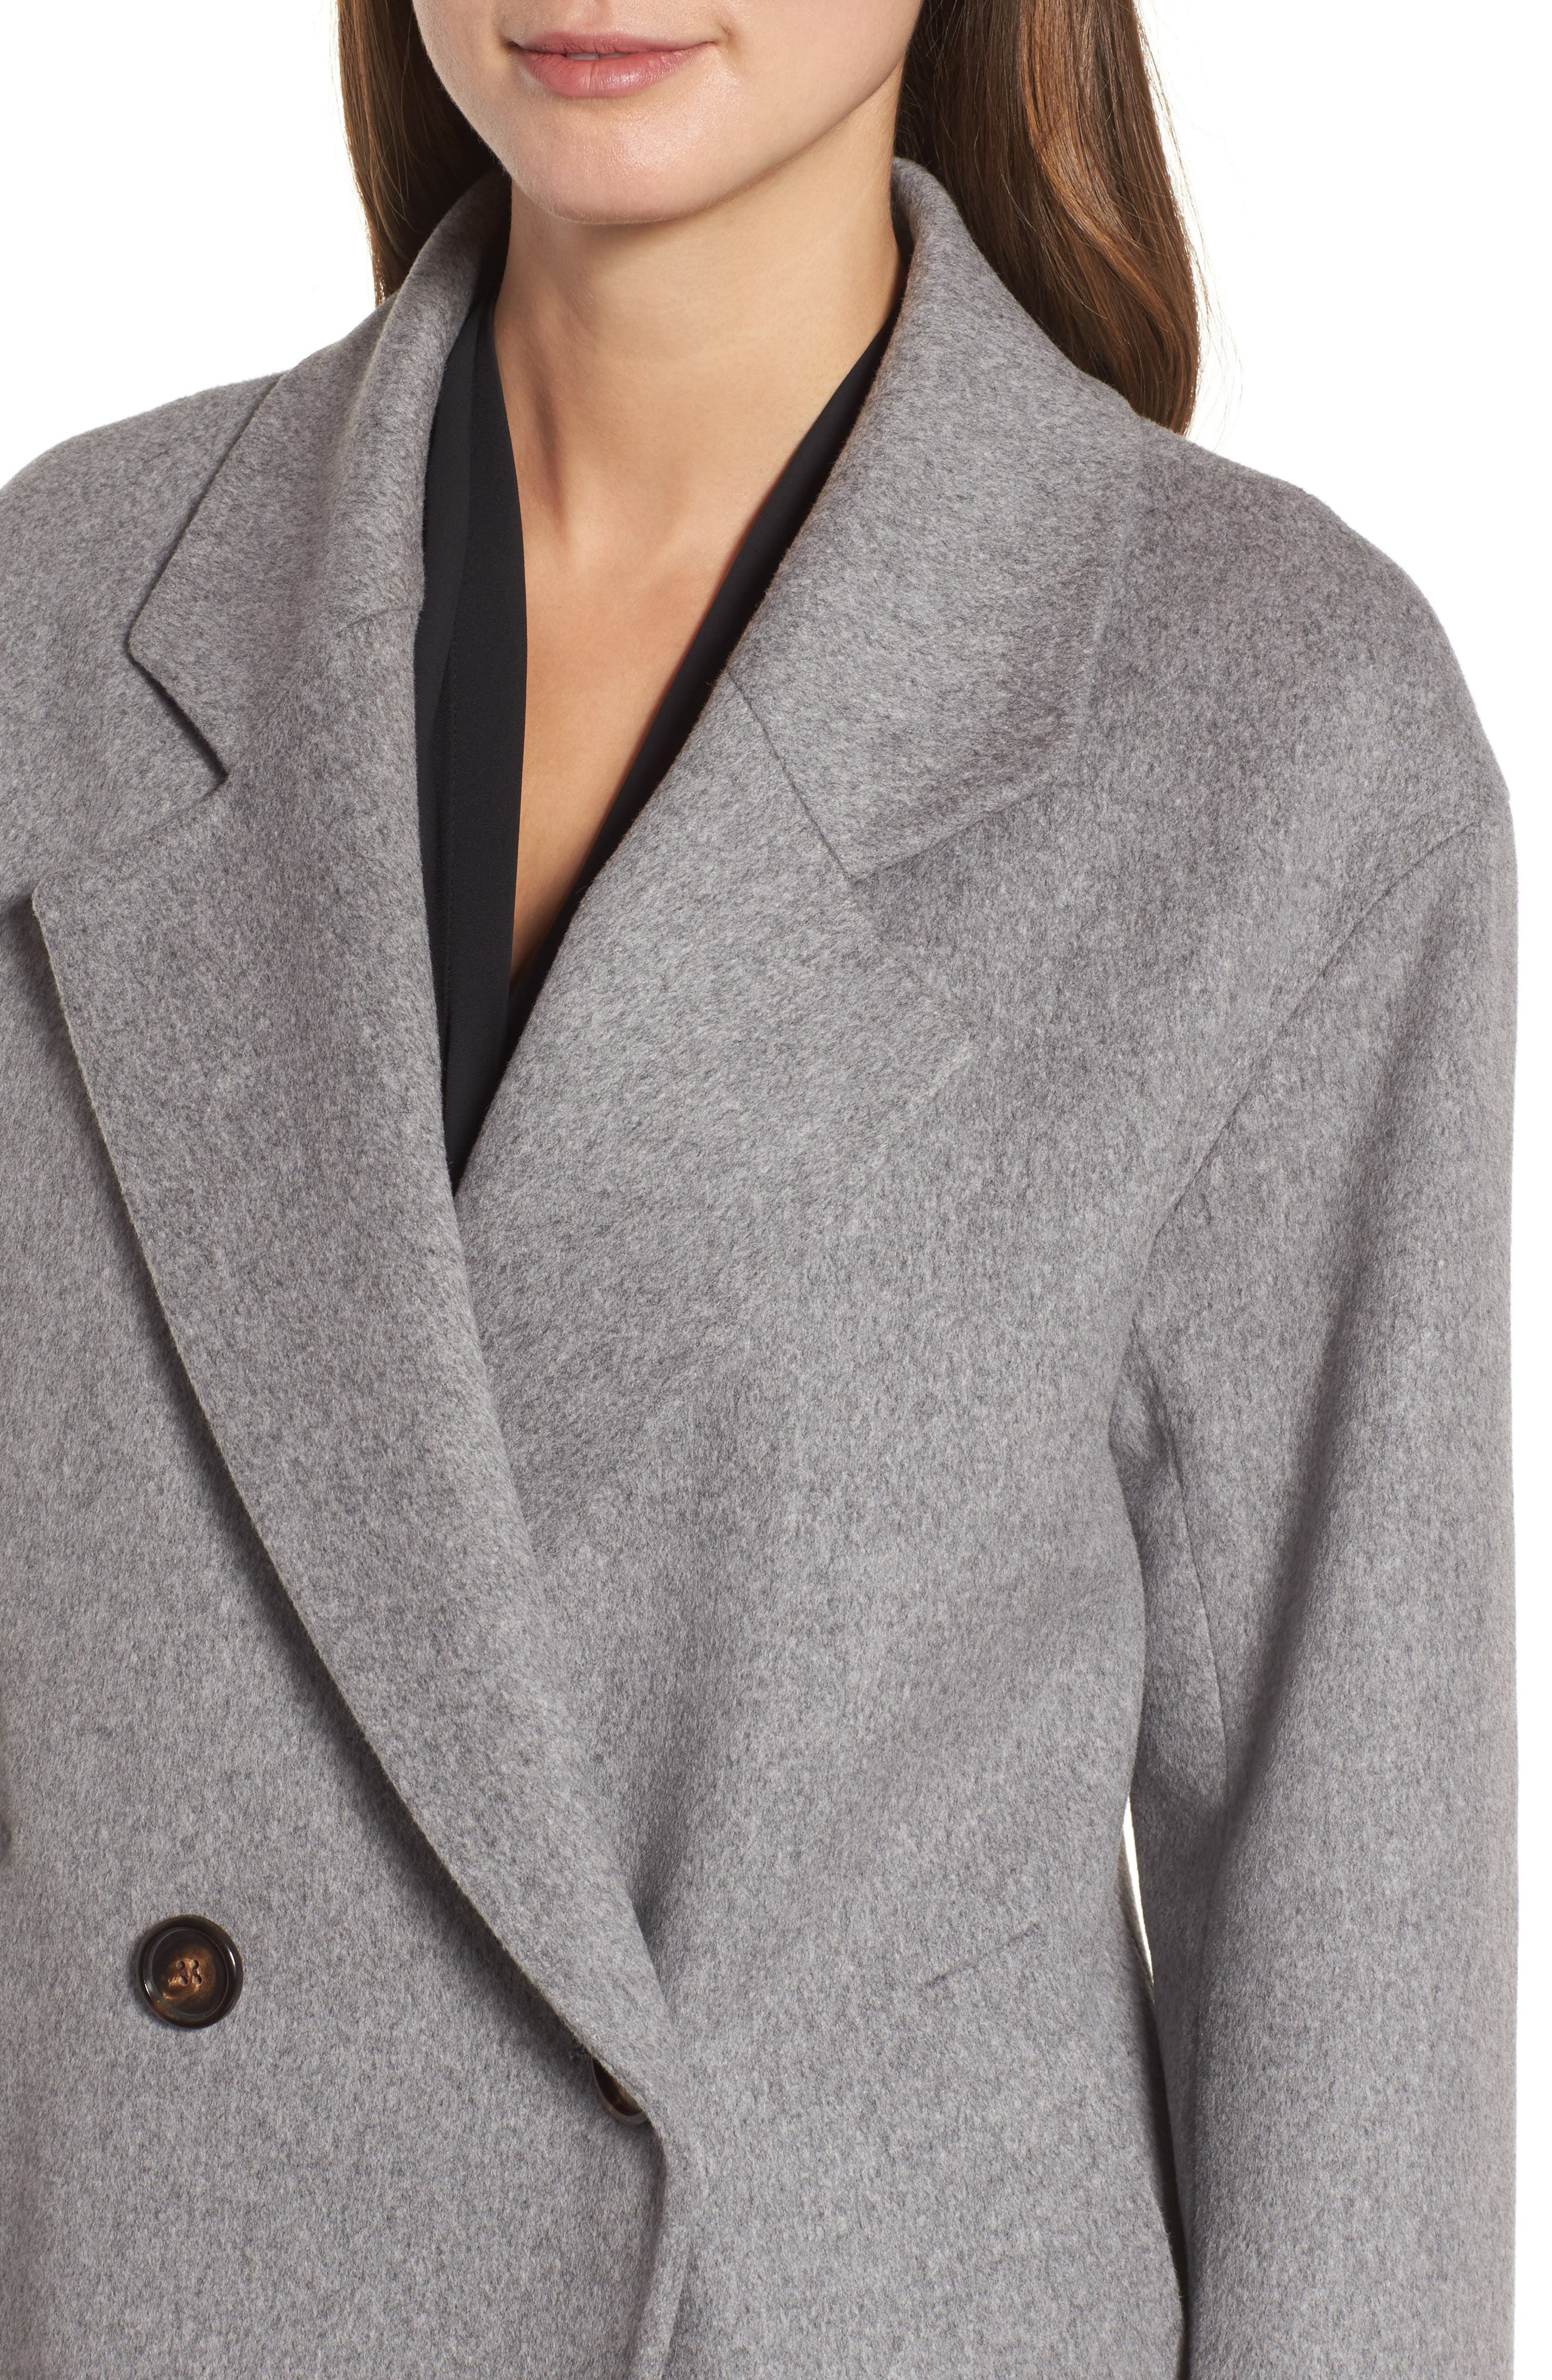 45 Loro Piana Wool Coat,                             Alternate thumbnail 4, color,                             080